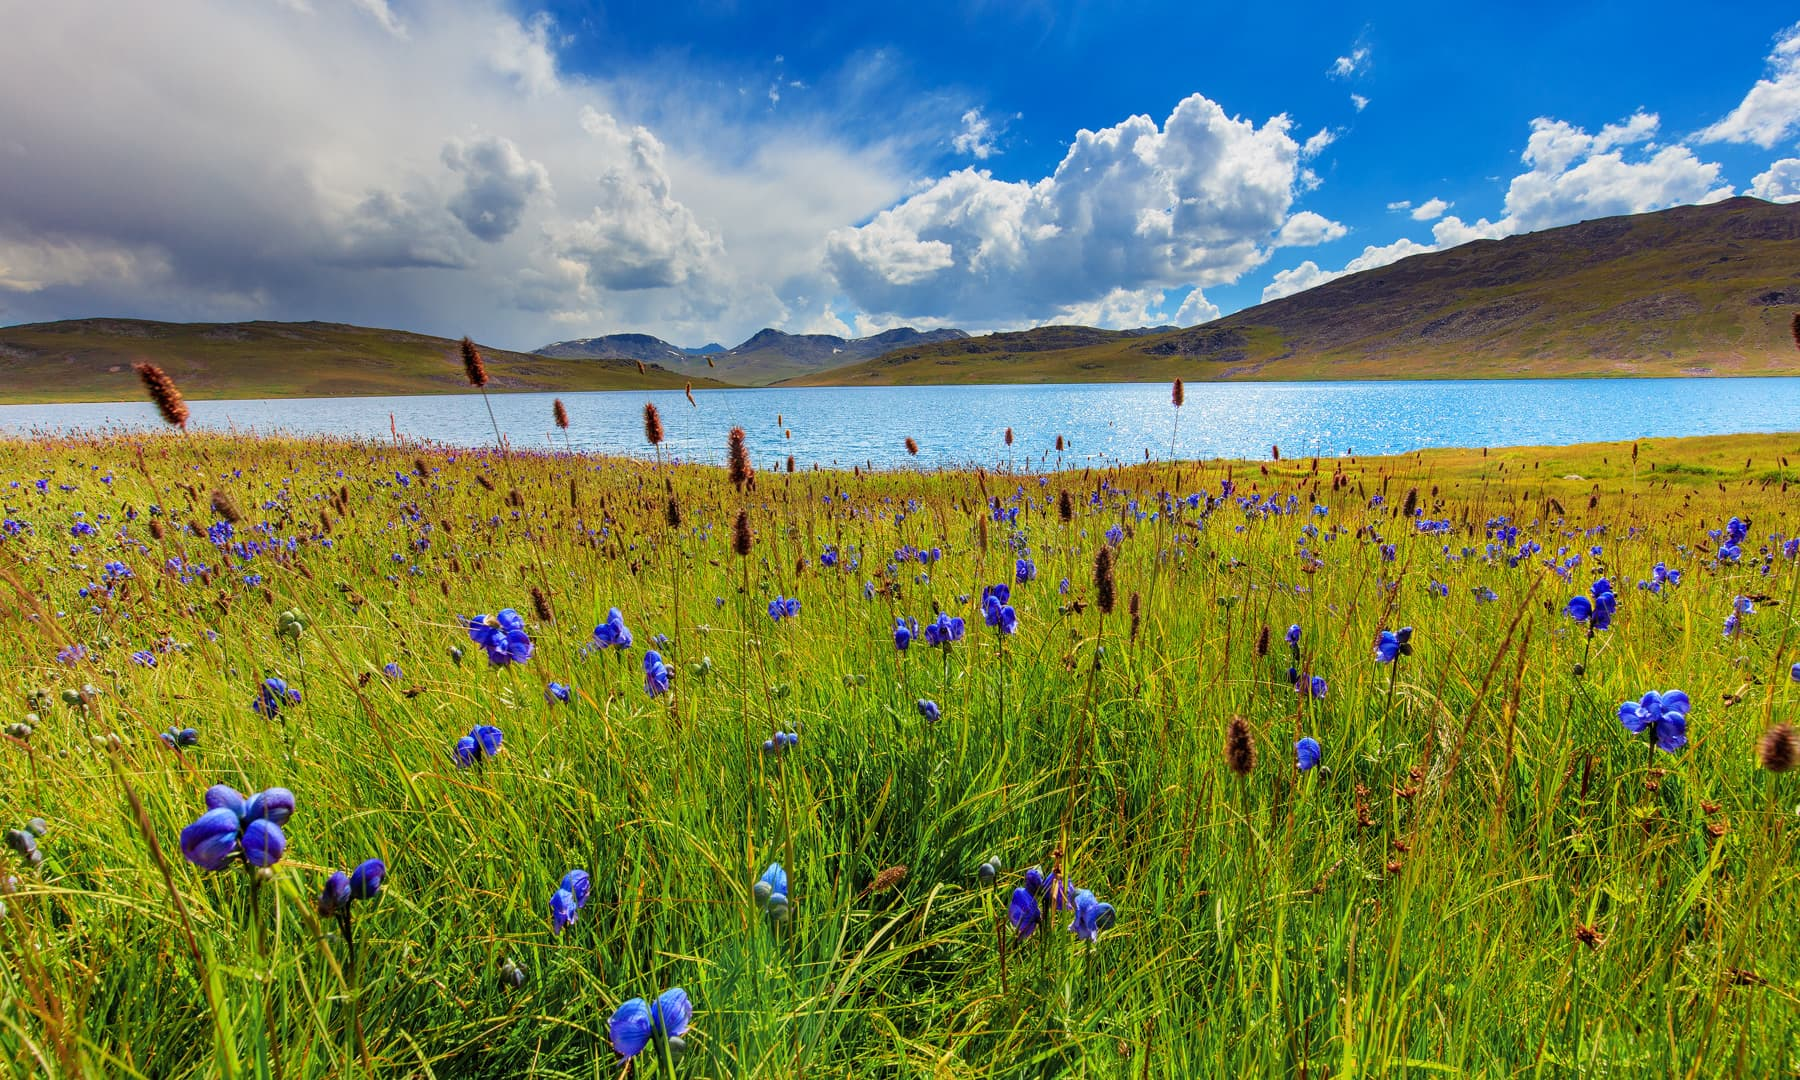 The stunning backdrop of Sheosar Lake in the plains of Deosai.